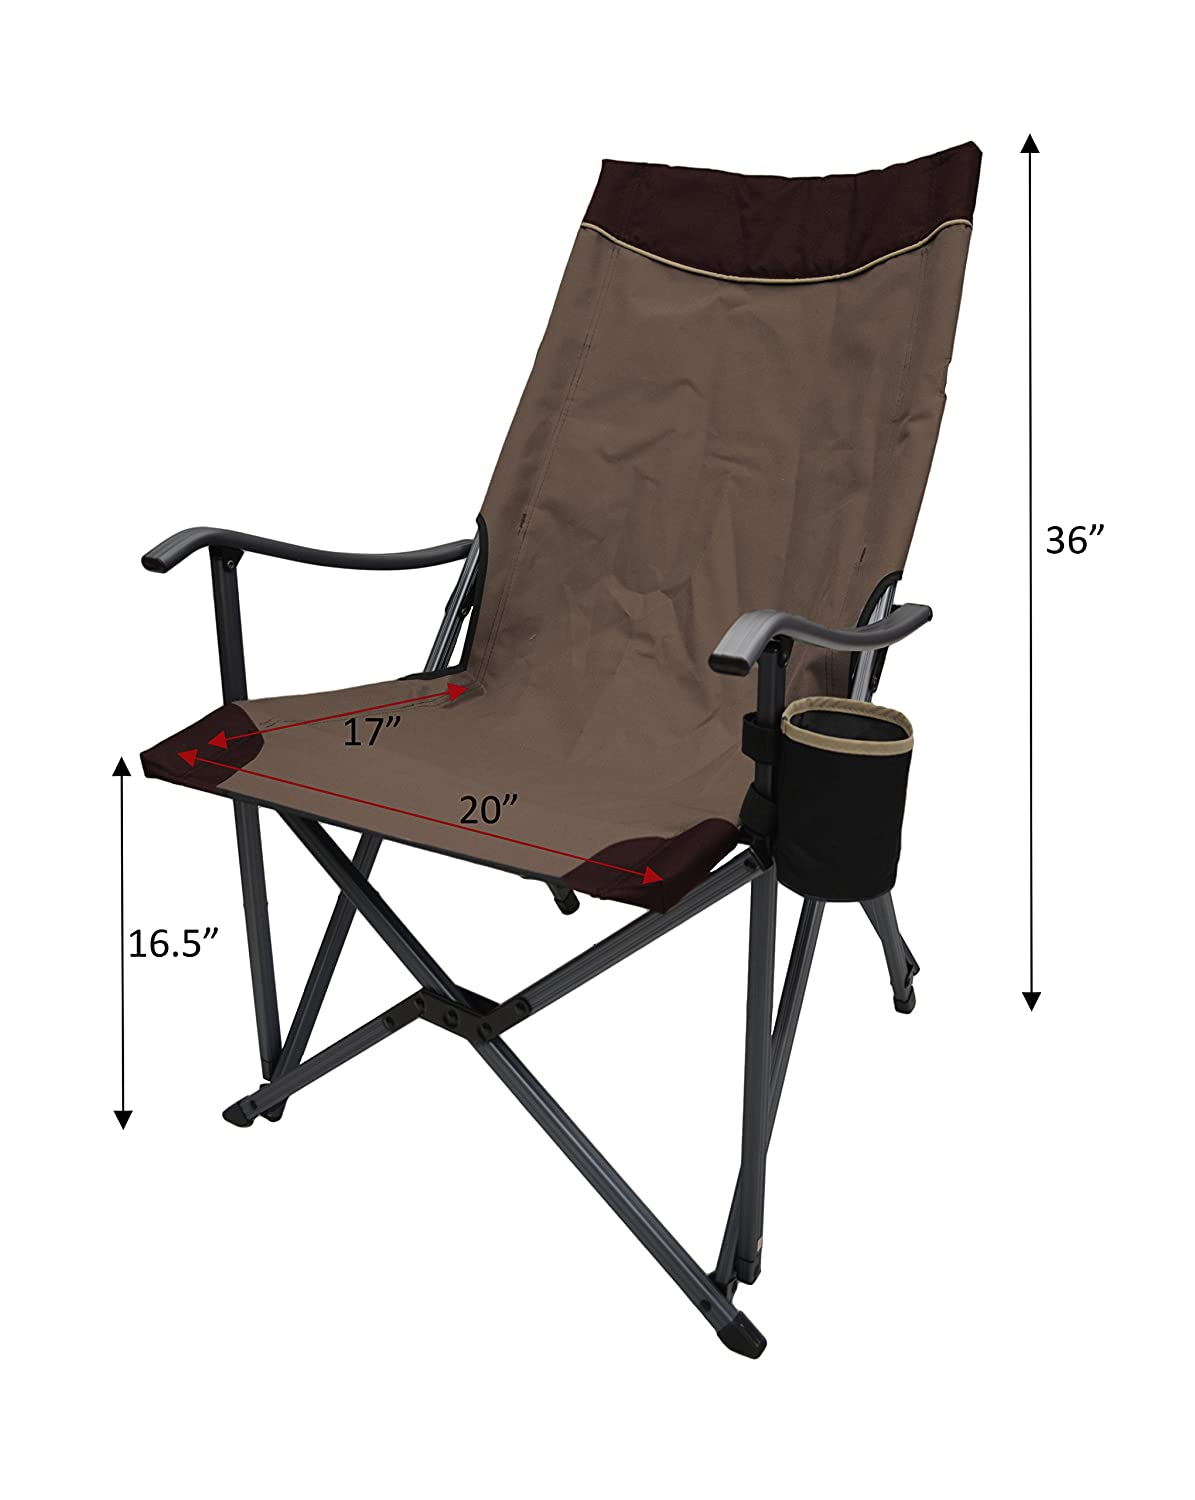 Amazon.com: Ultra peso ligero silla plegable RV silla de ...